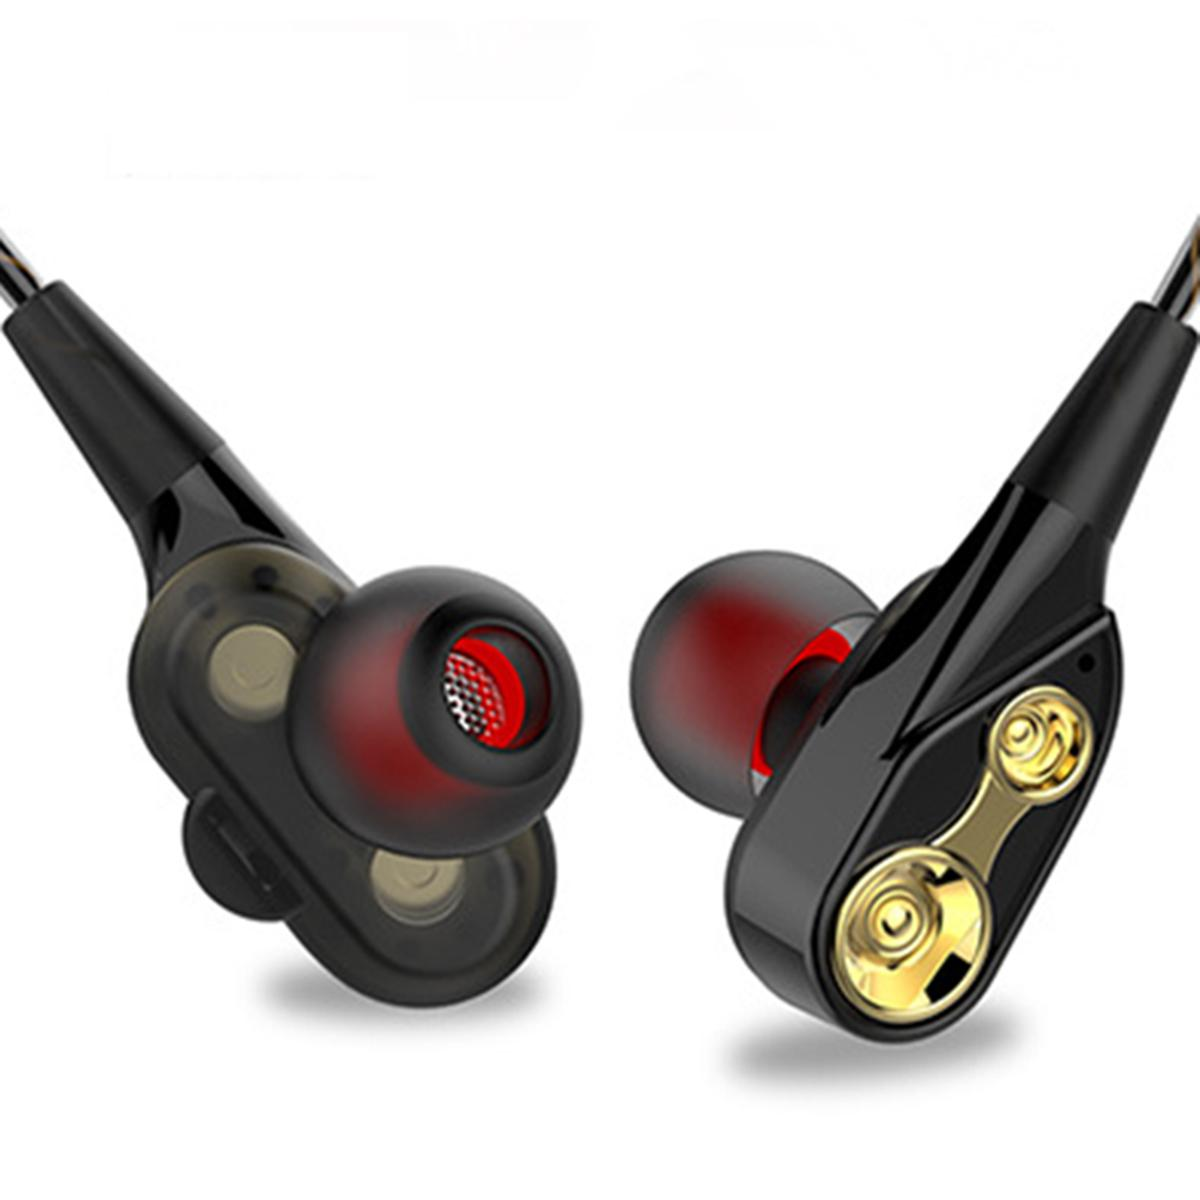 Buy Usplabsoemvivo In Ear Headphones At Best Prices Online Sri Earphone Headset Asus Stereo Oem Double Moving Coil Hi Fi Bass Earphones With Mic Noise Reduction Volume Control Hifi Earbuds